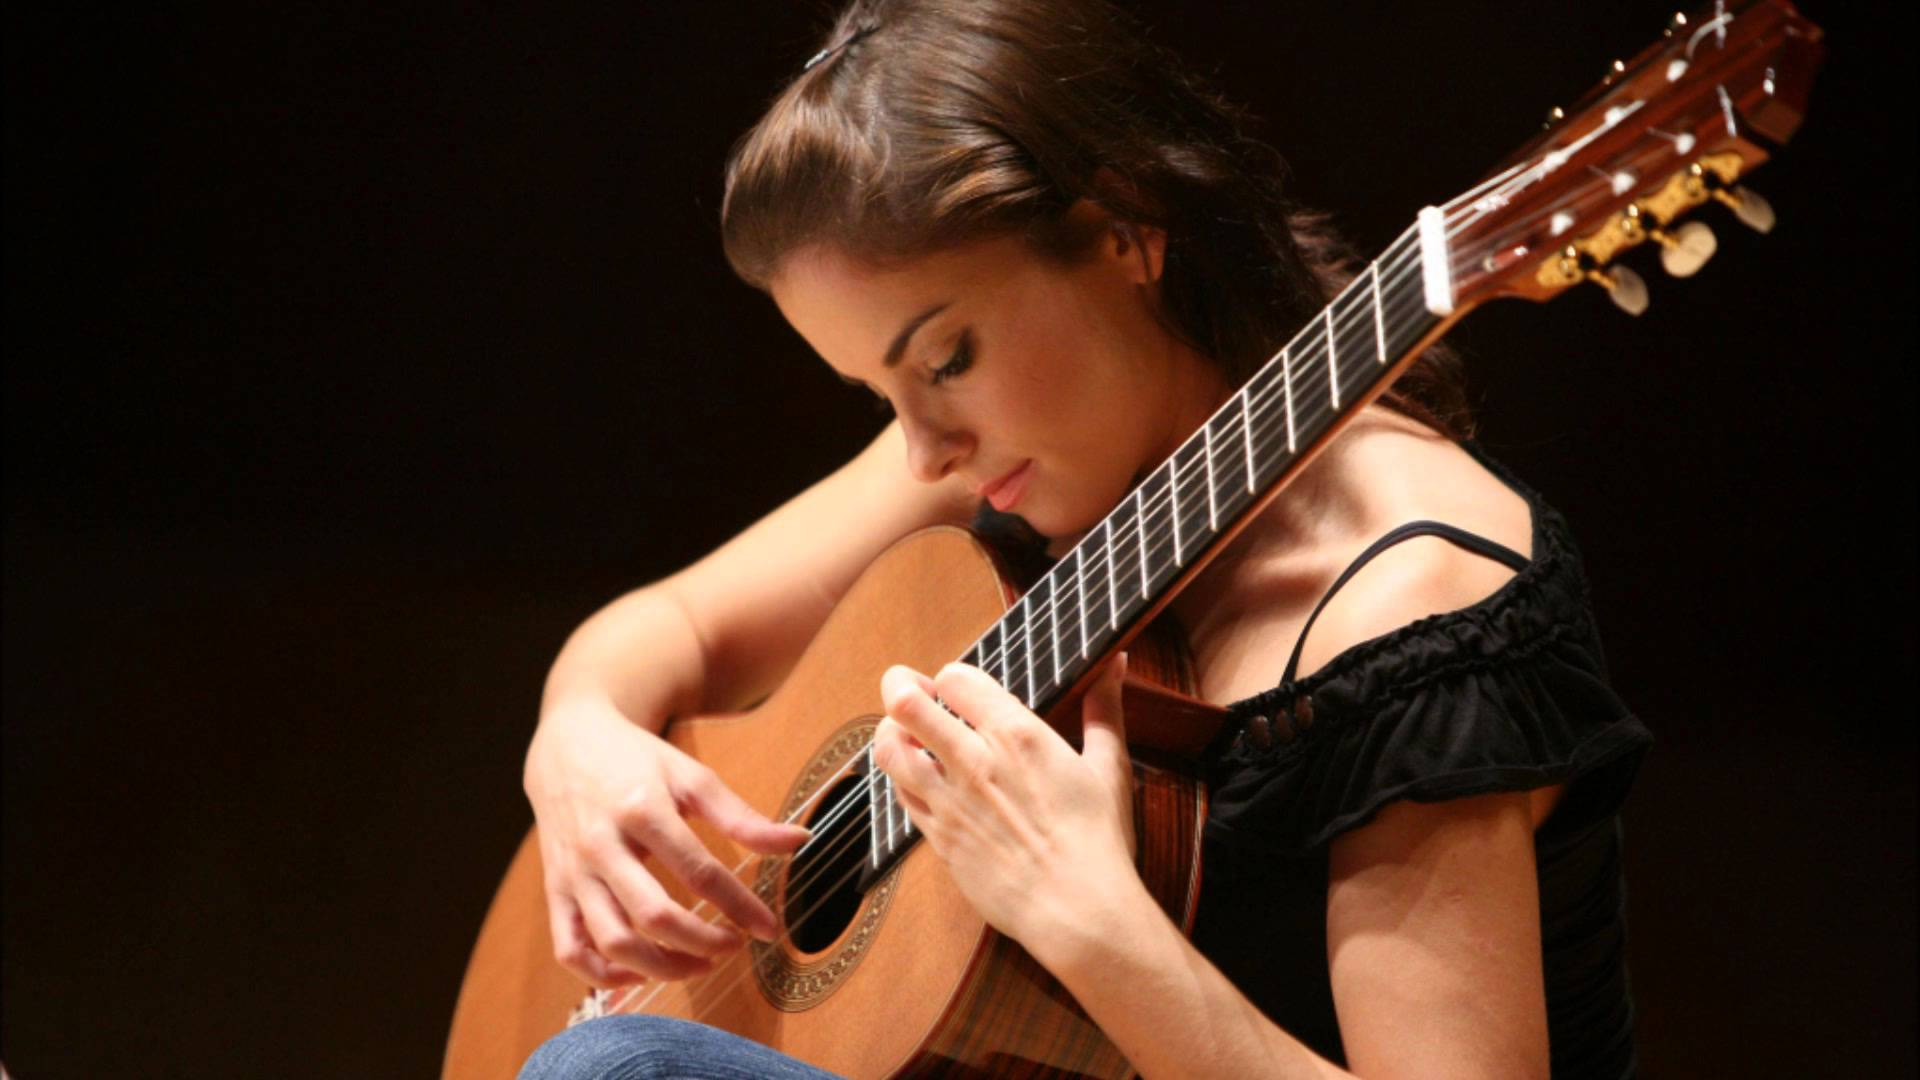 Premier classical guitarist Ana Vidović will perform August 7 – 9, 2015 at the Lake Tahoe SummerFest. (Photo: Courtesy of Ana Vidović)